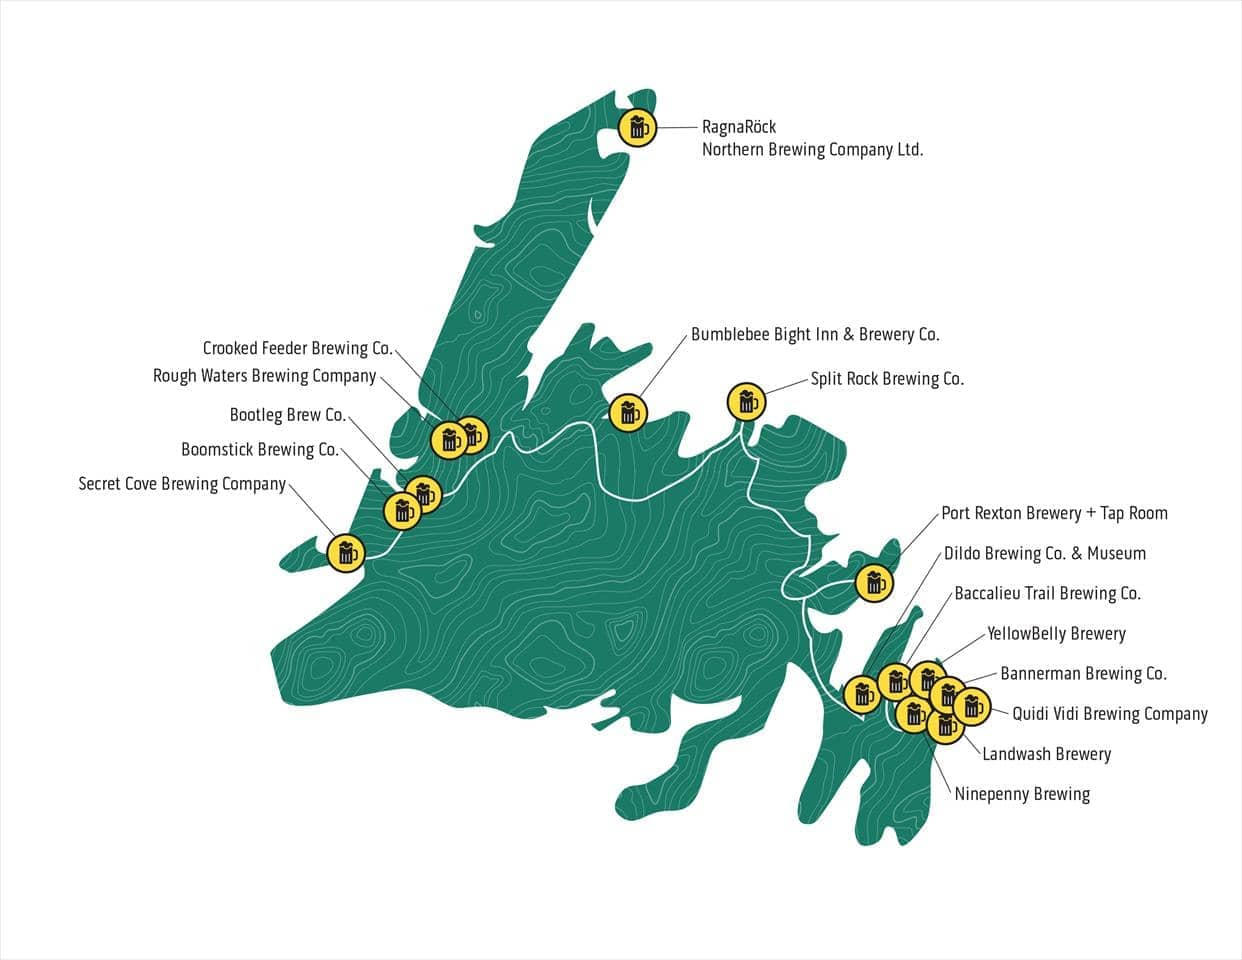 Map of craft breweries from around the island of Newfoundland